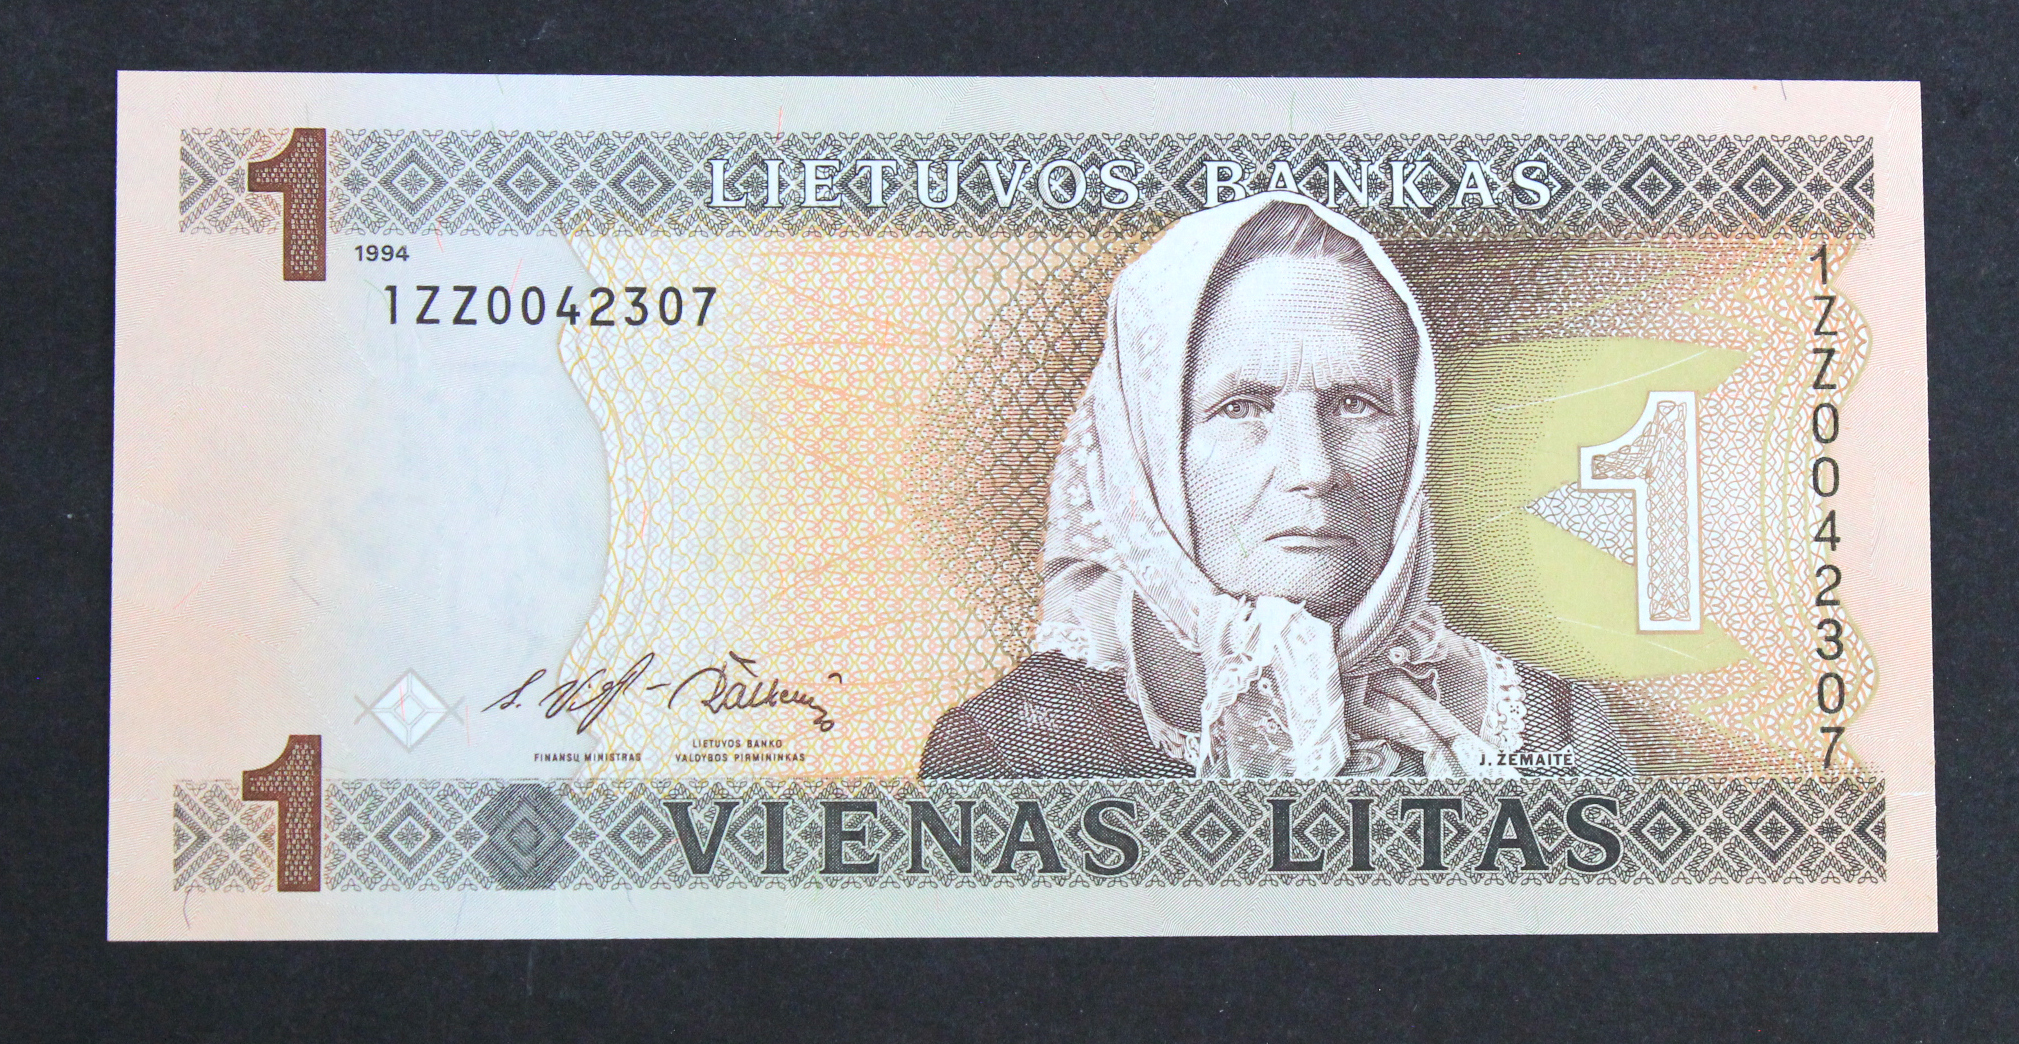 Lithuania 1 Litas dated 1994, exceptionally scarce REPLACEMENT note, serial 1ZZ 0042307 (TBB B164az,